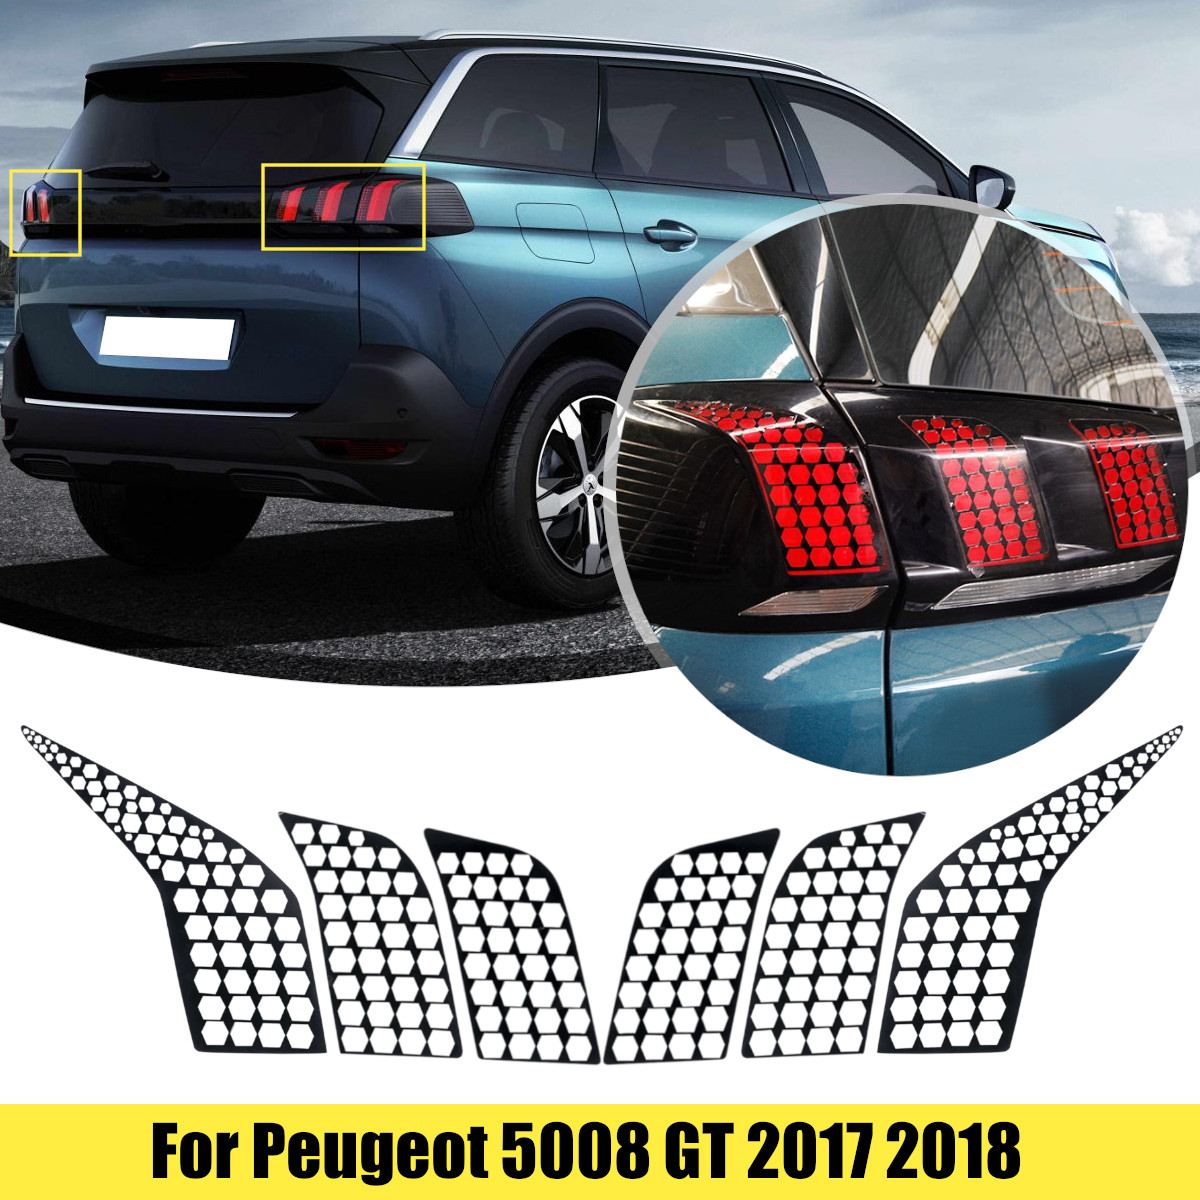 6Pcs/Set PVC Car Rear Tail Light Taillight Lamp Cover Honeycomb Stickers Decoration Decal Sticker For Peugeot 5008 GT 2017 2018